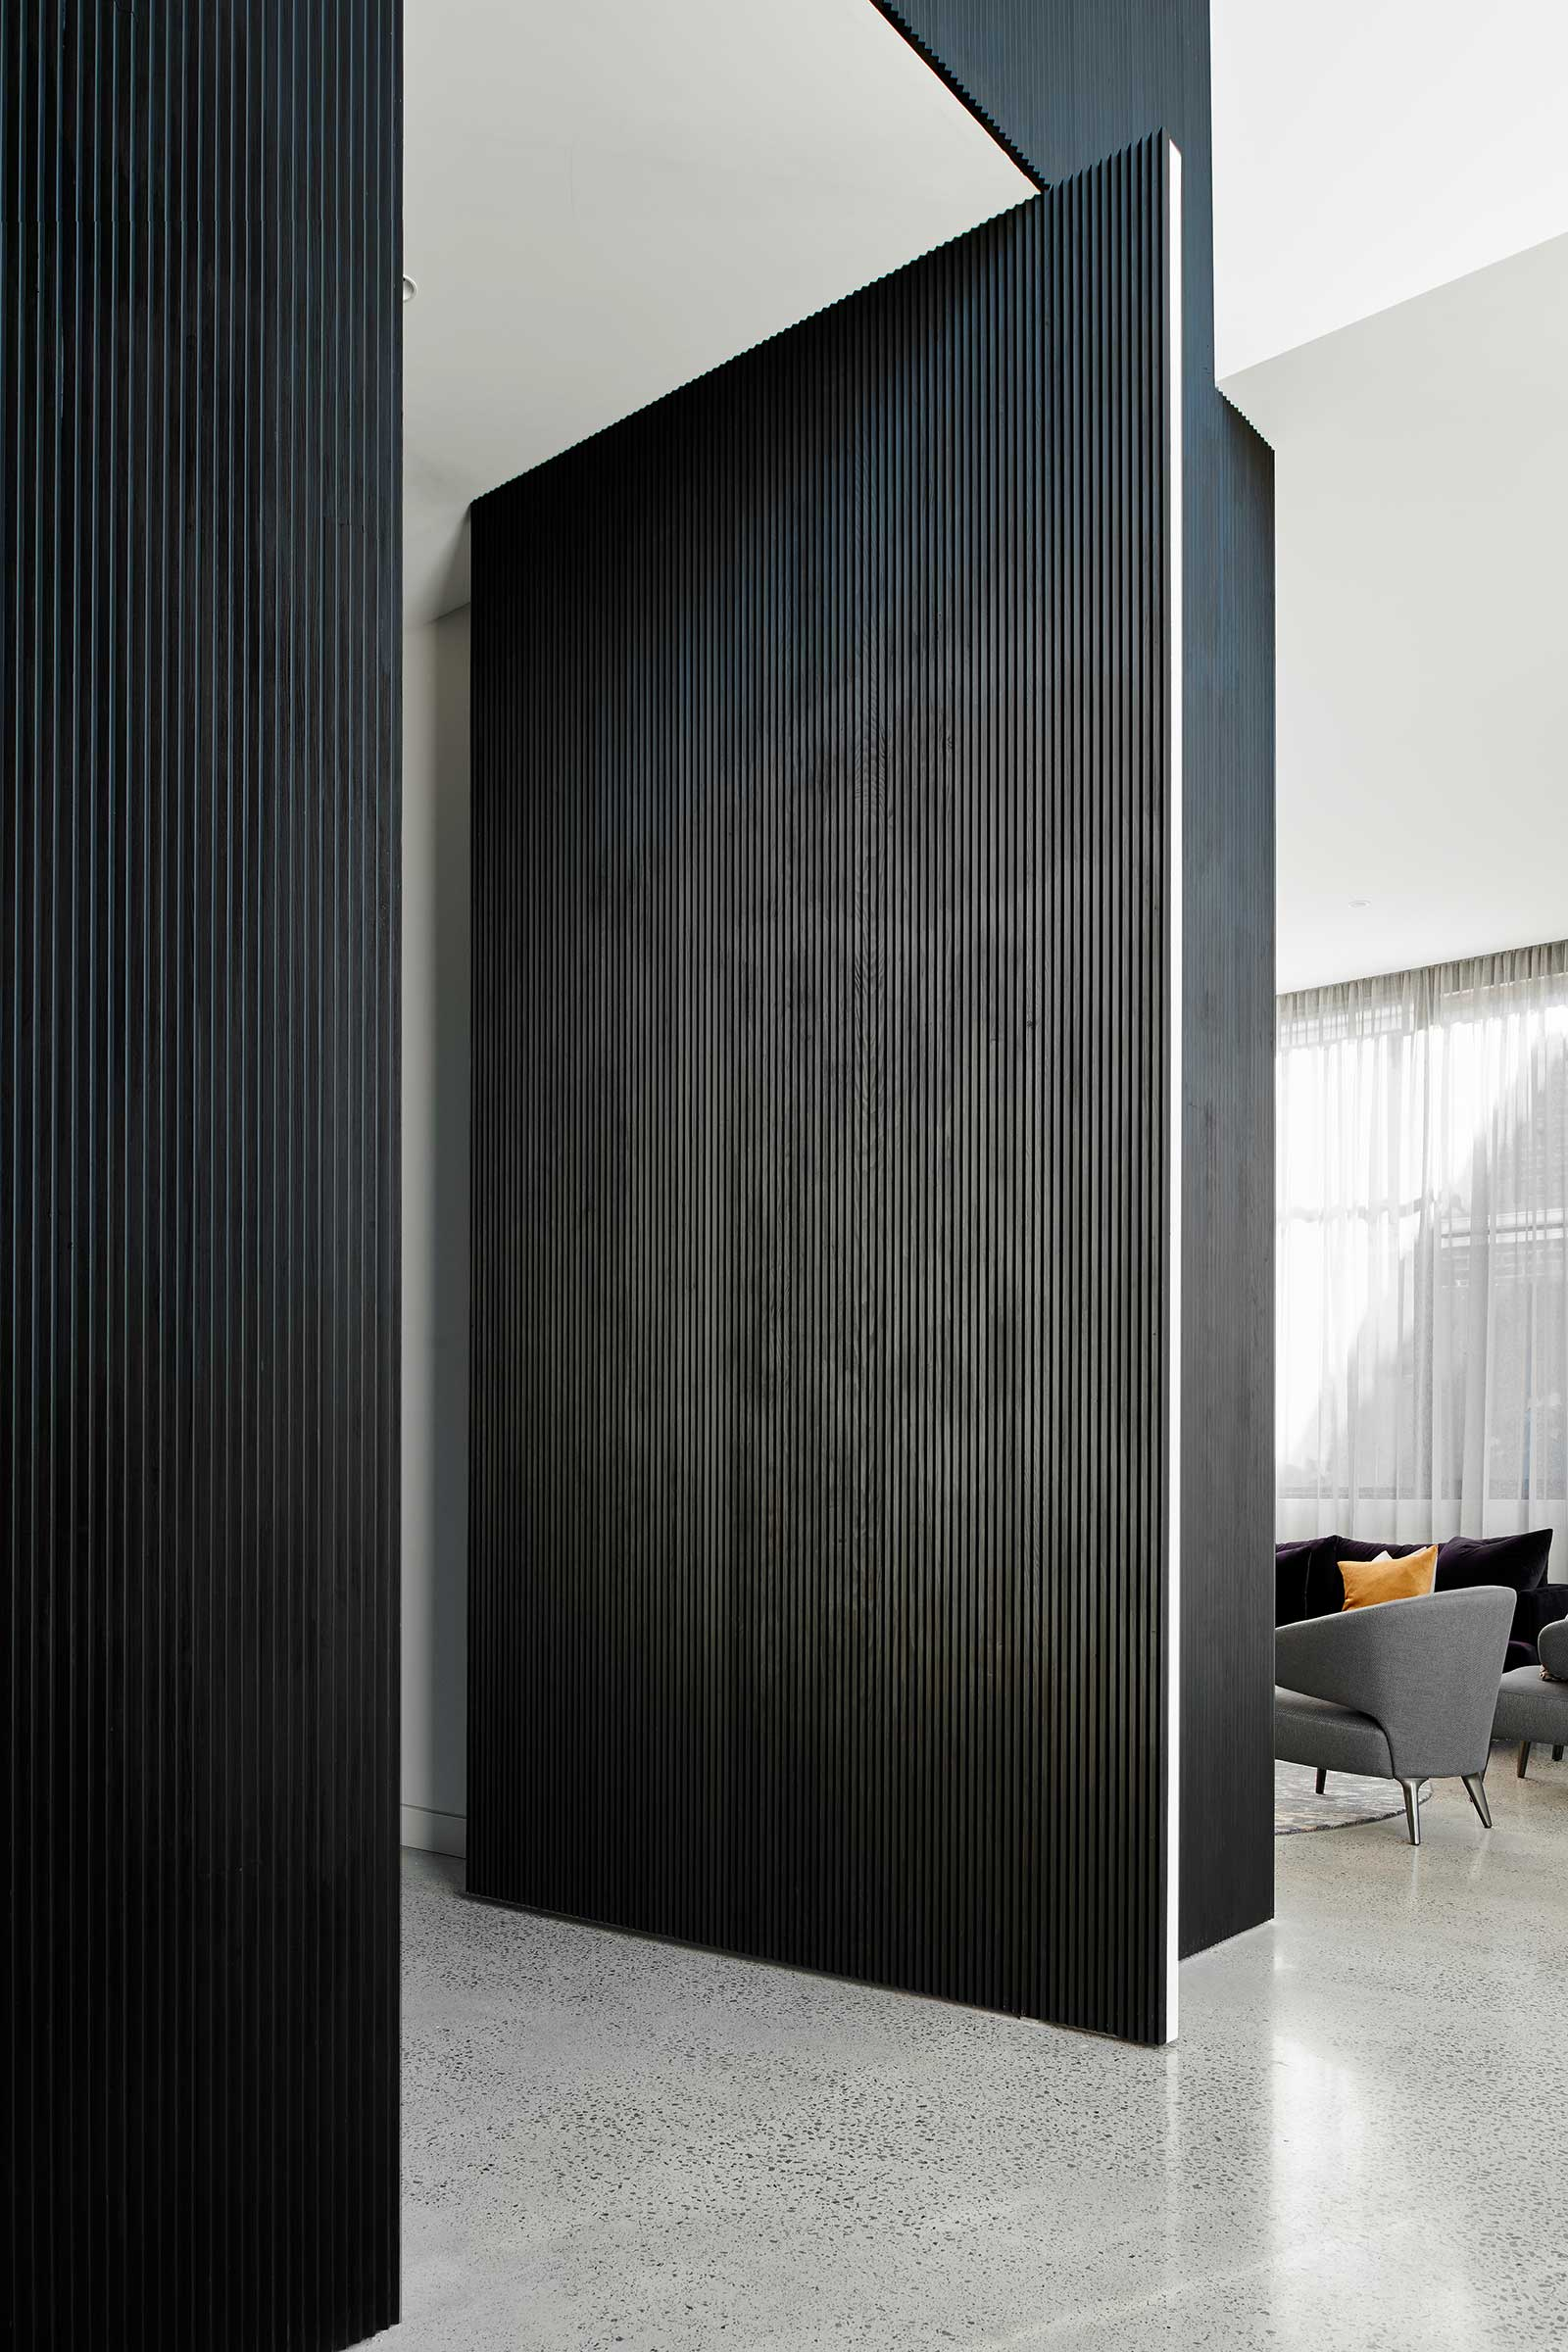 11_taouk_architects_bramley_court_veeral_2119-1_edit_p.jpg